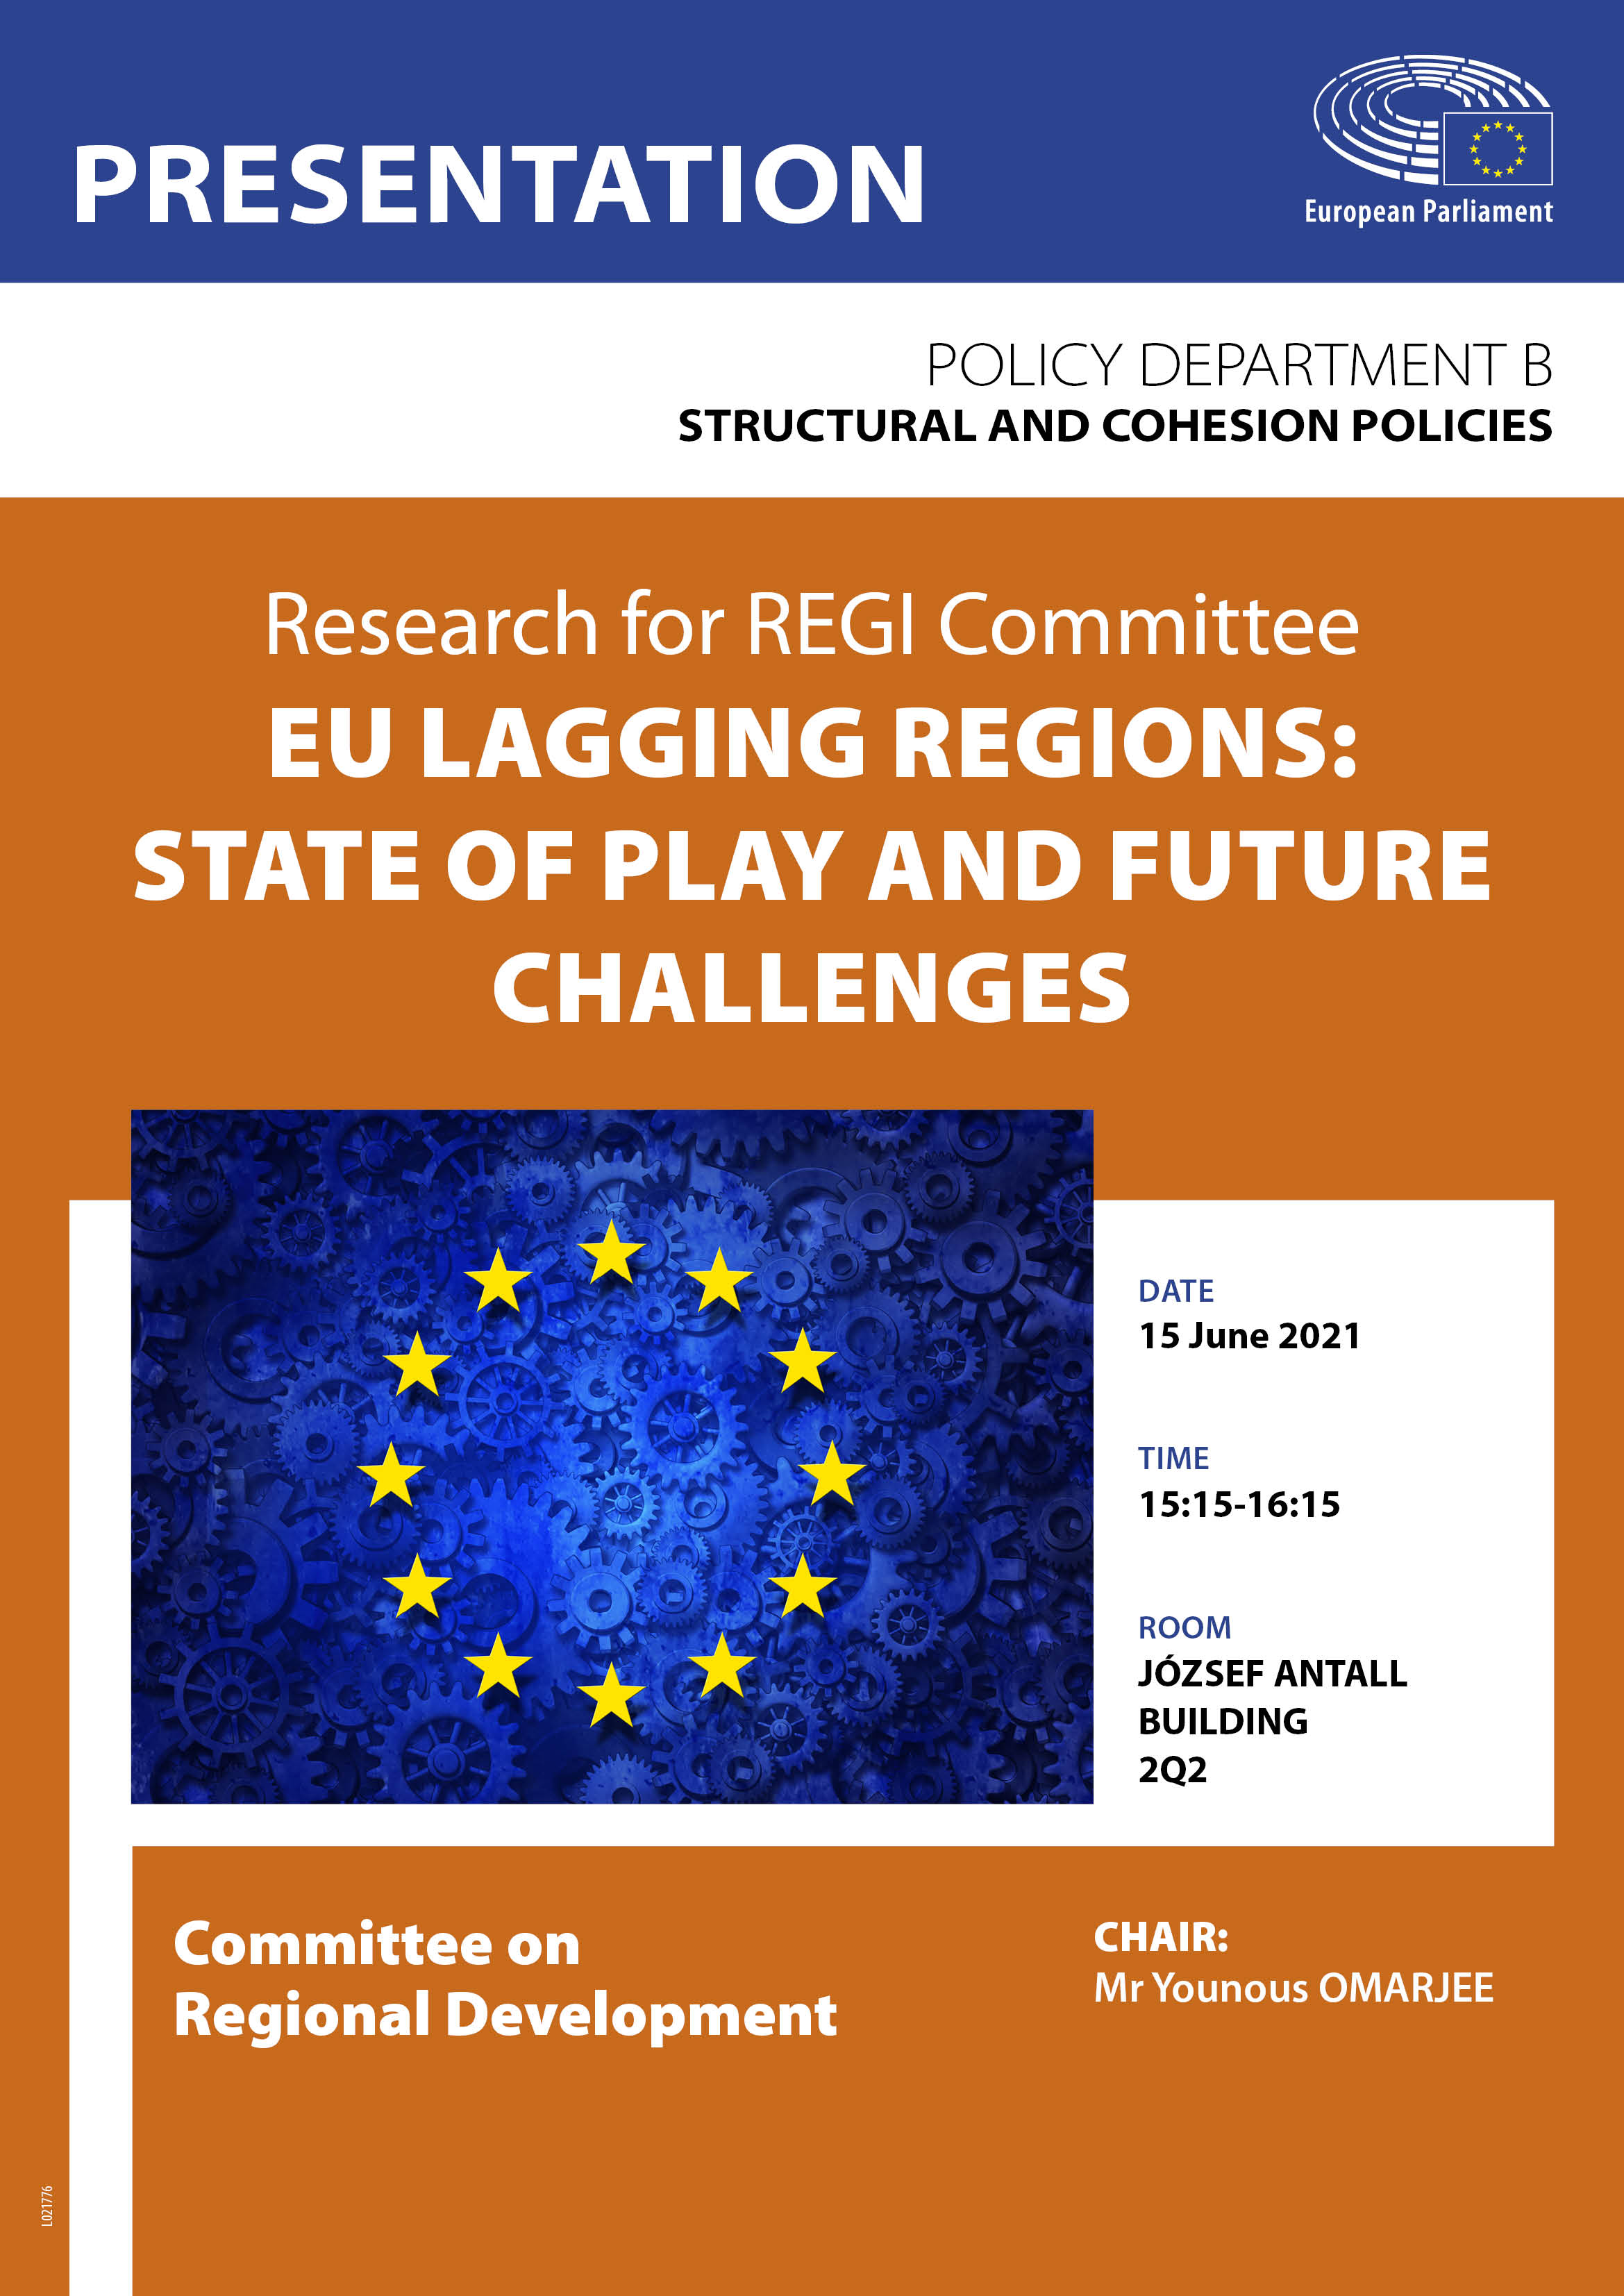 Poster: EU lagging regions: State of play and future challenges